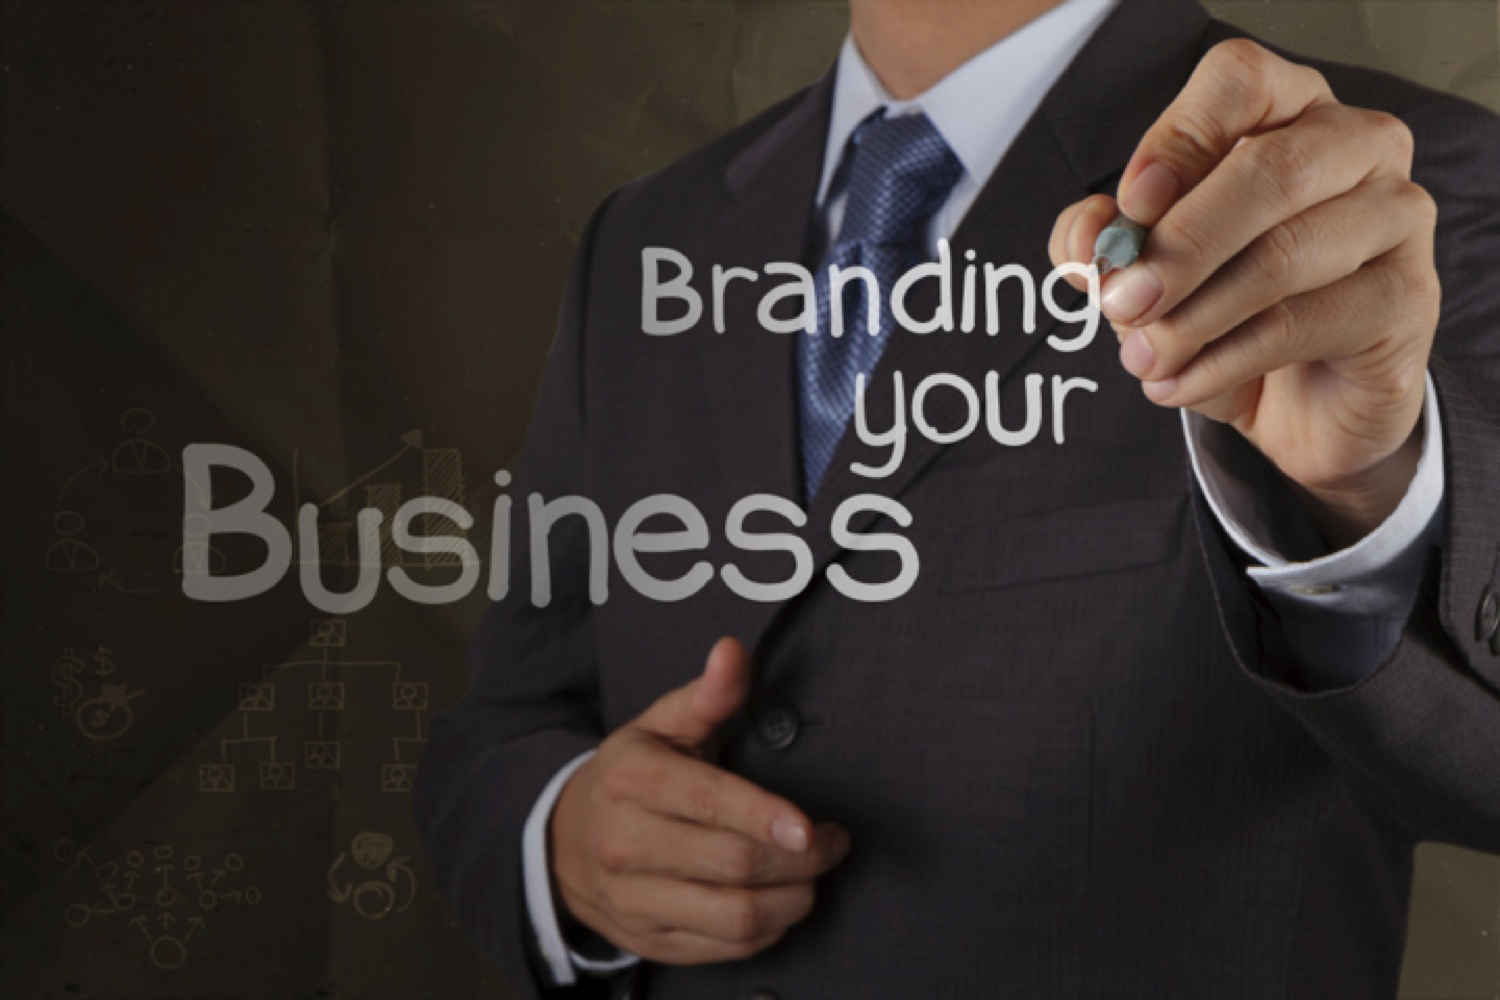 Man Writing Branding Your Business